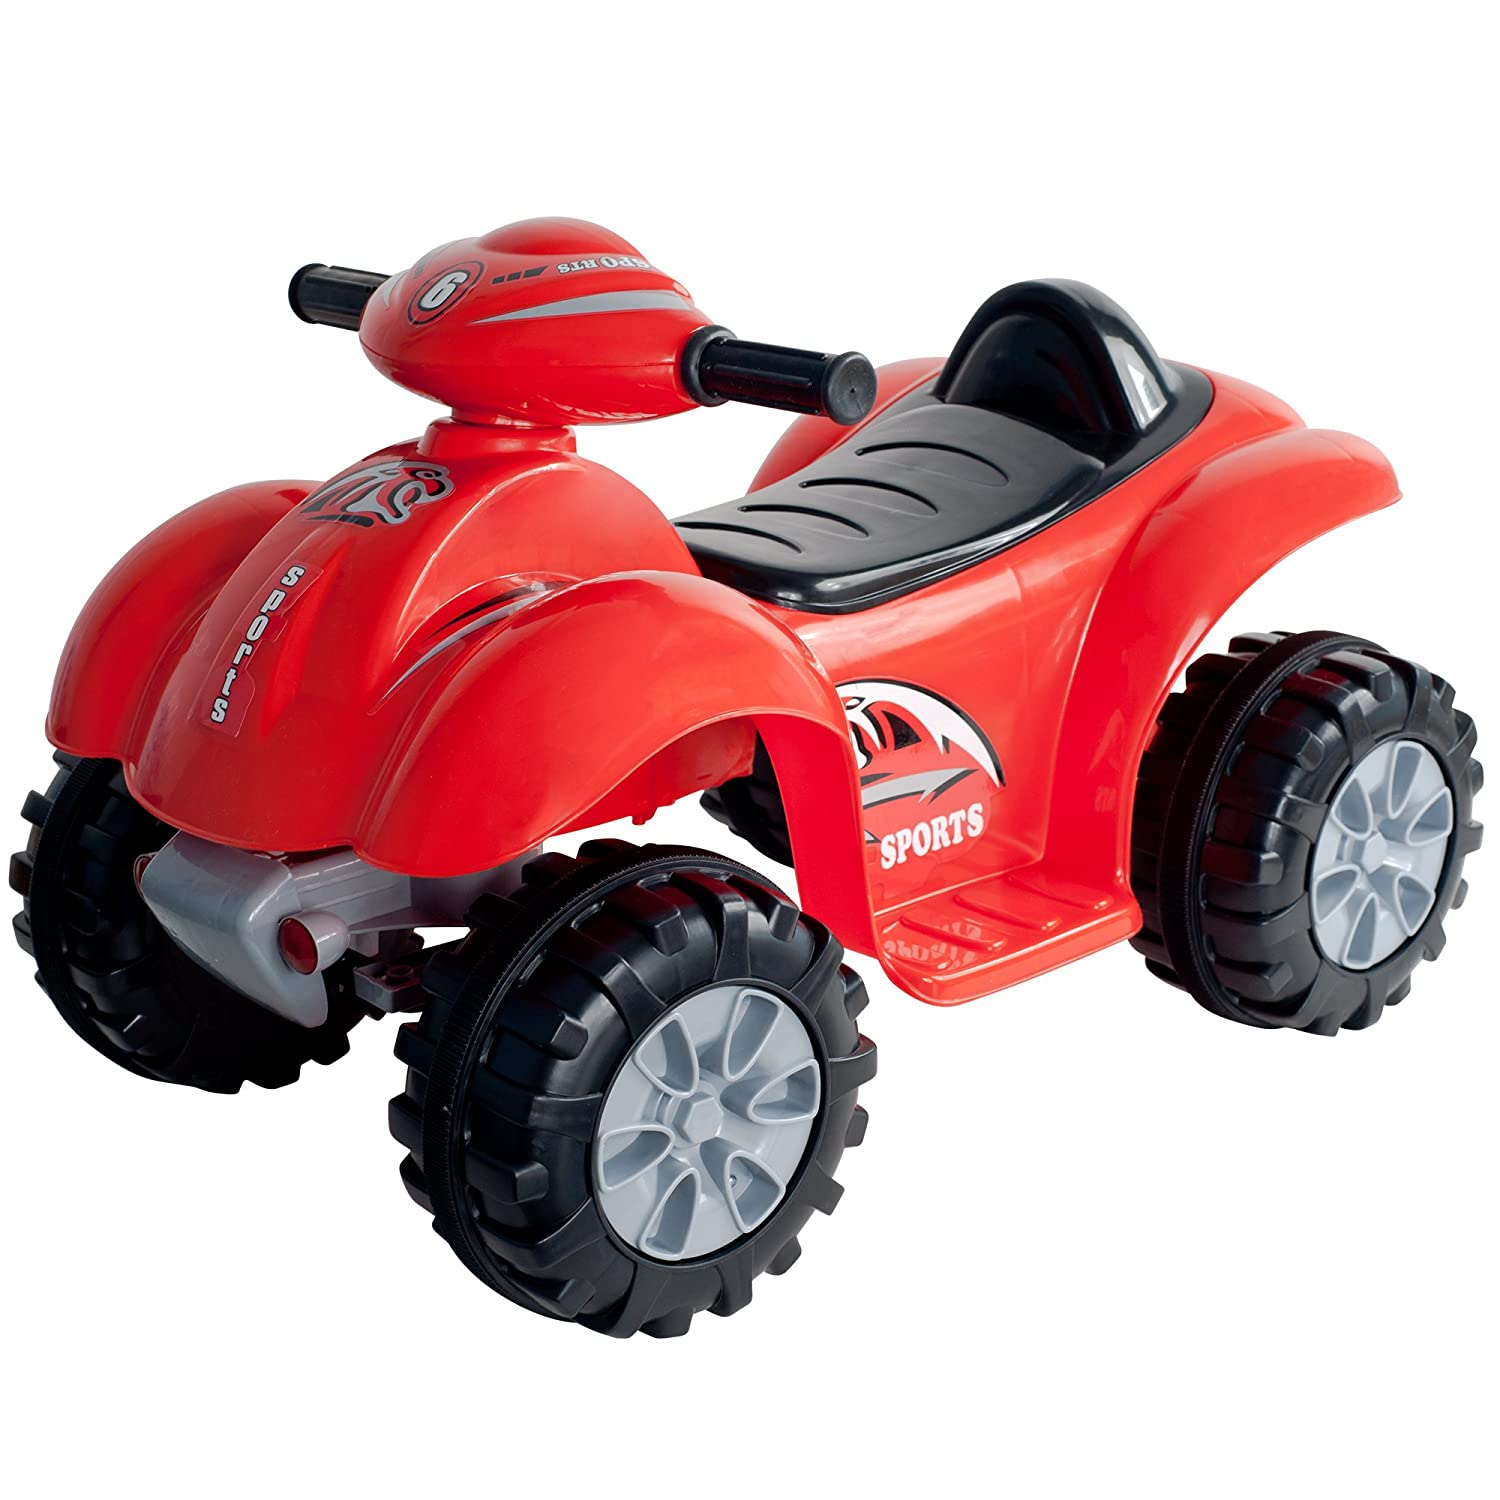 Battery Operated Ride On Toys >> Ride On Toy Quad Battery Powered Ride On Atv Dinosaur Four Wheeler With Sound Effects By Lil Rider Toys For Boys And Girls 2 4 Year Olds Red